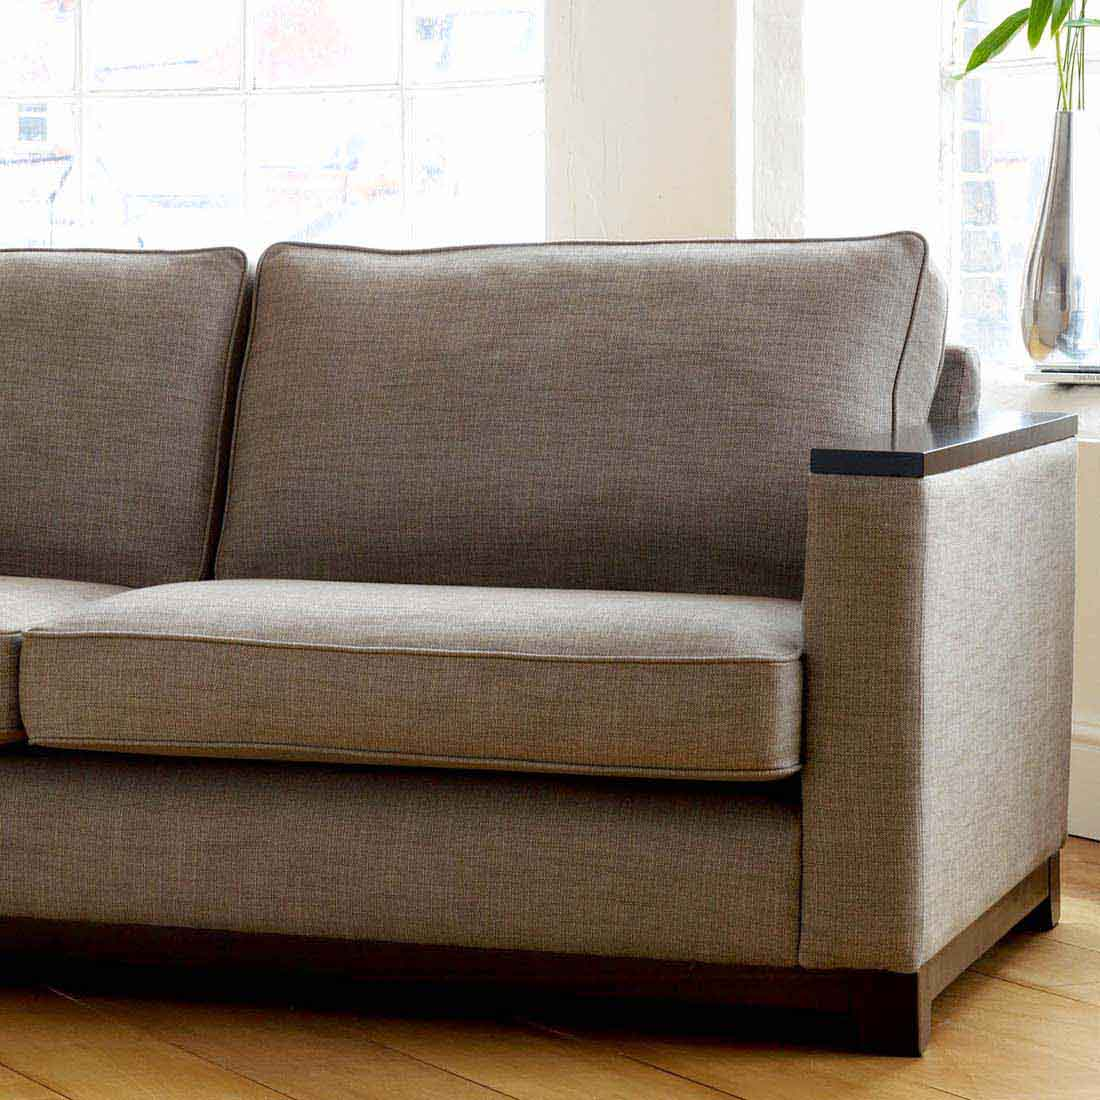 Mayfair Sofa Contemporary Brown Leather Sofa Chaise